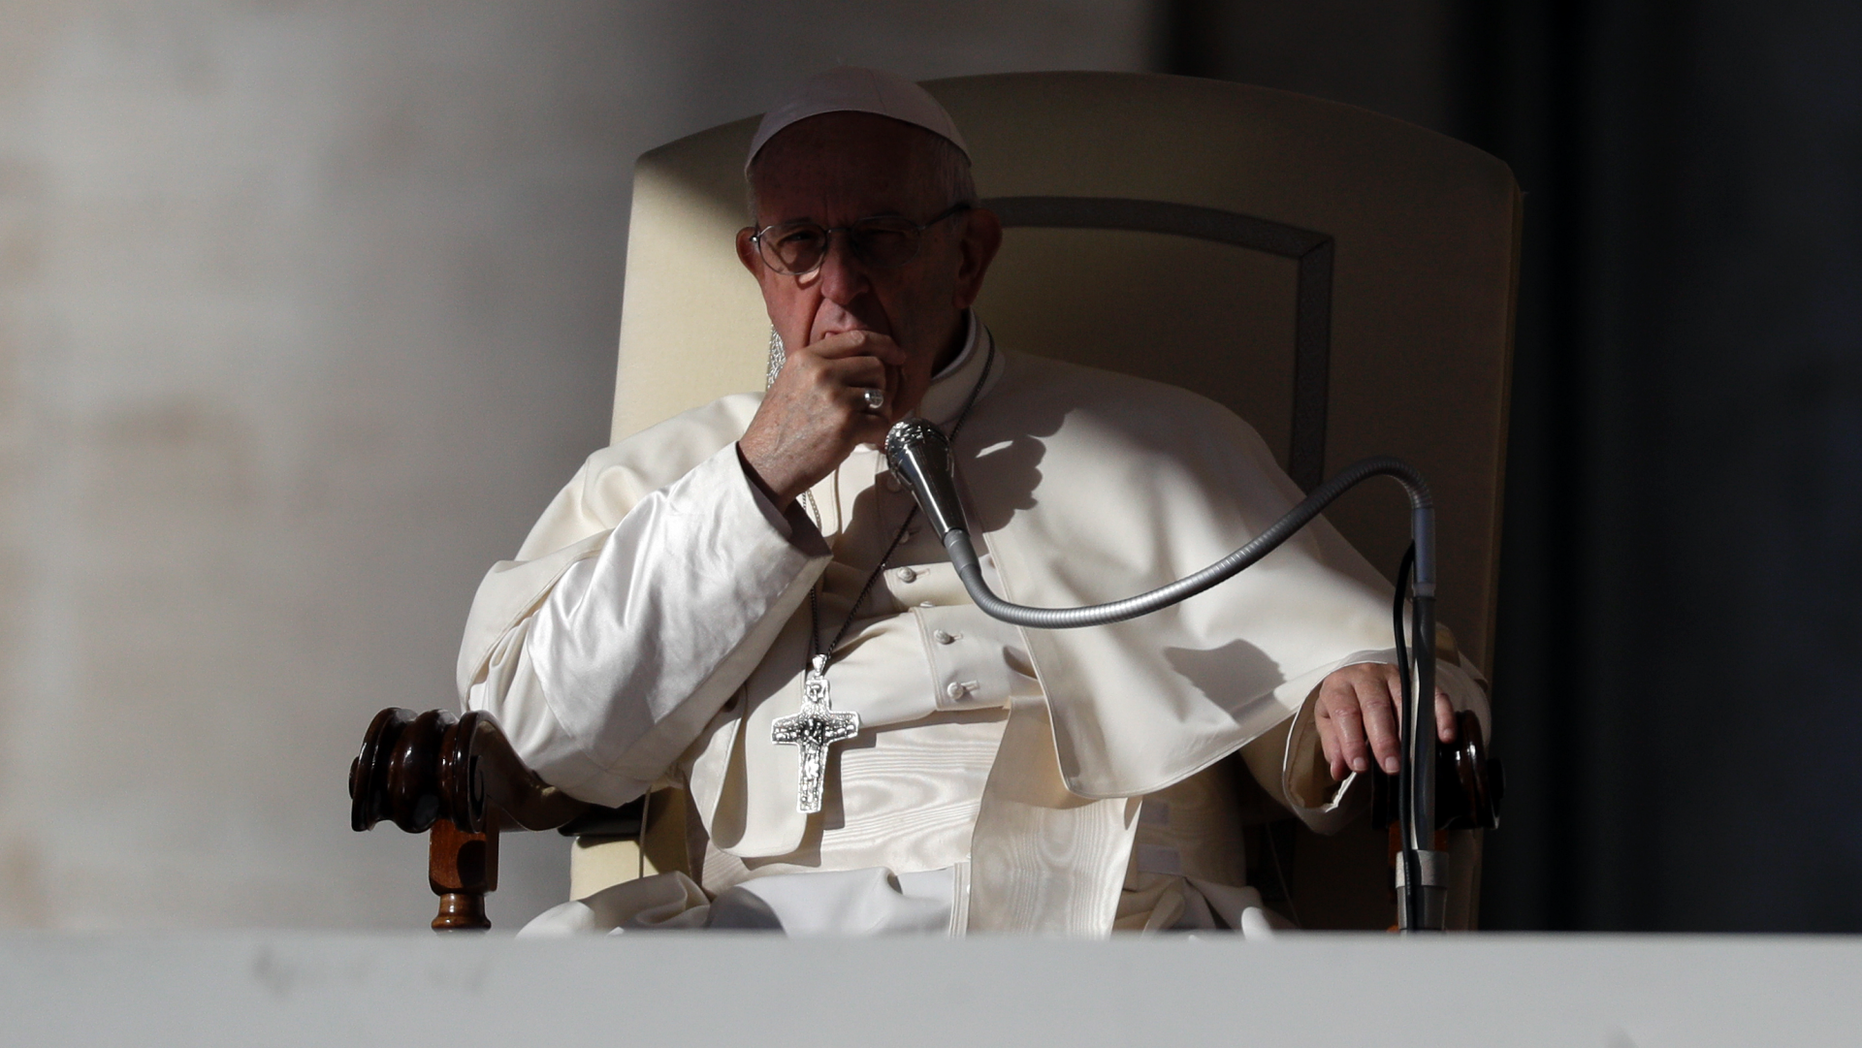 Pope Francis listens to the welcome speeches during his weekly general audience in St. Peter's Square at the Vatican, Wednesday, Oct. 24, 2018. (AP Photo/Gregorio Borgia)